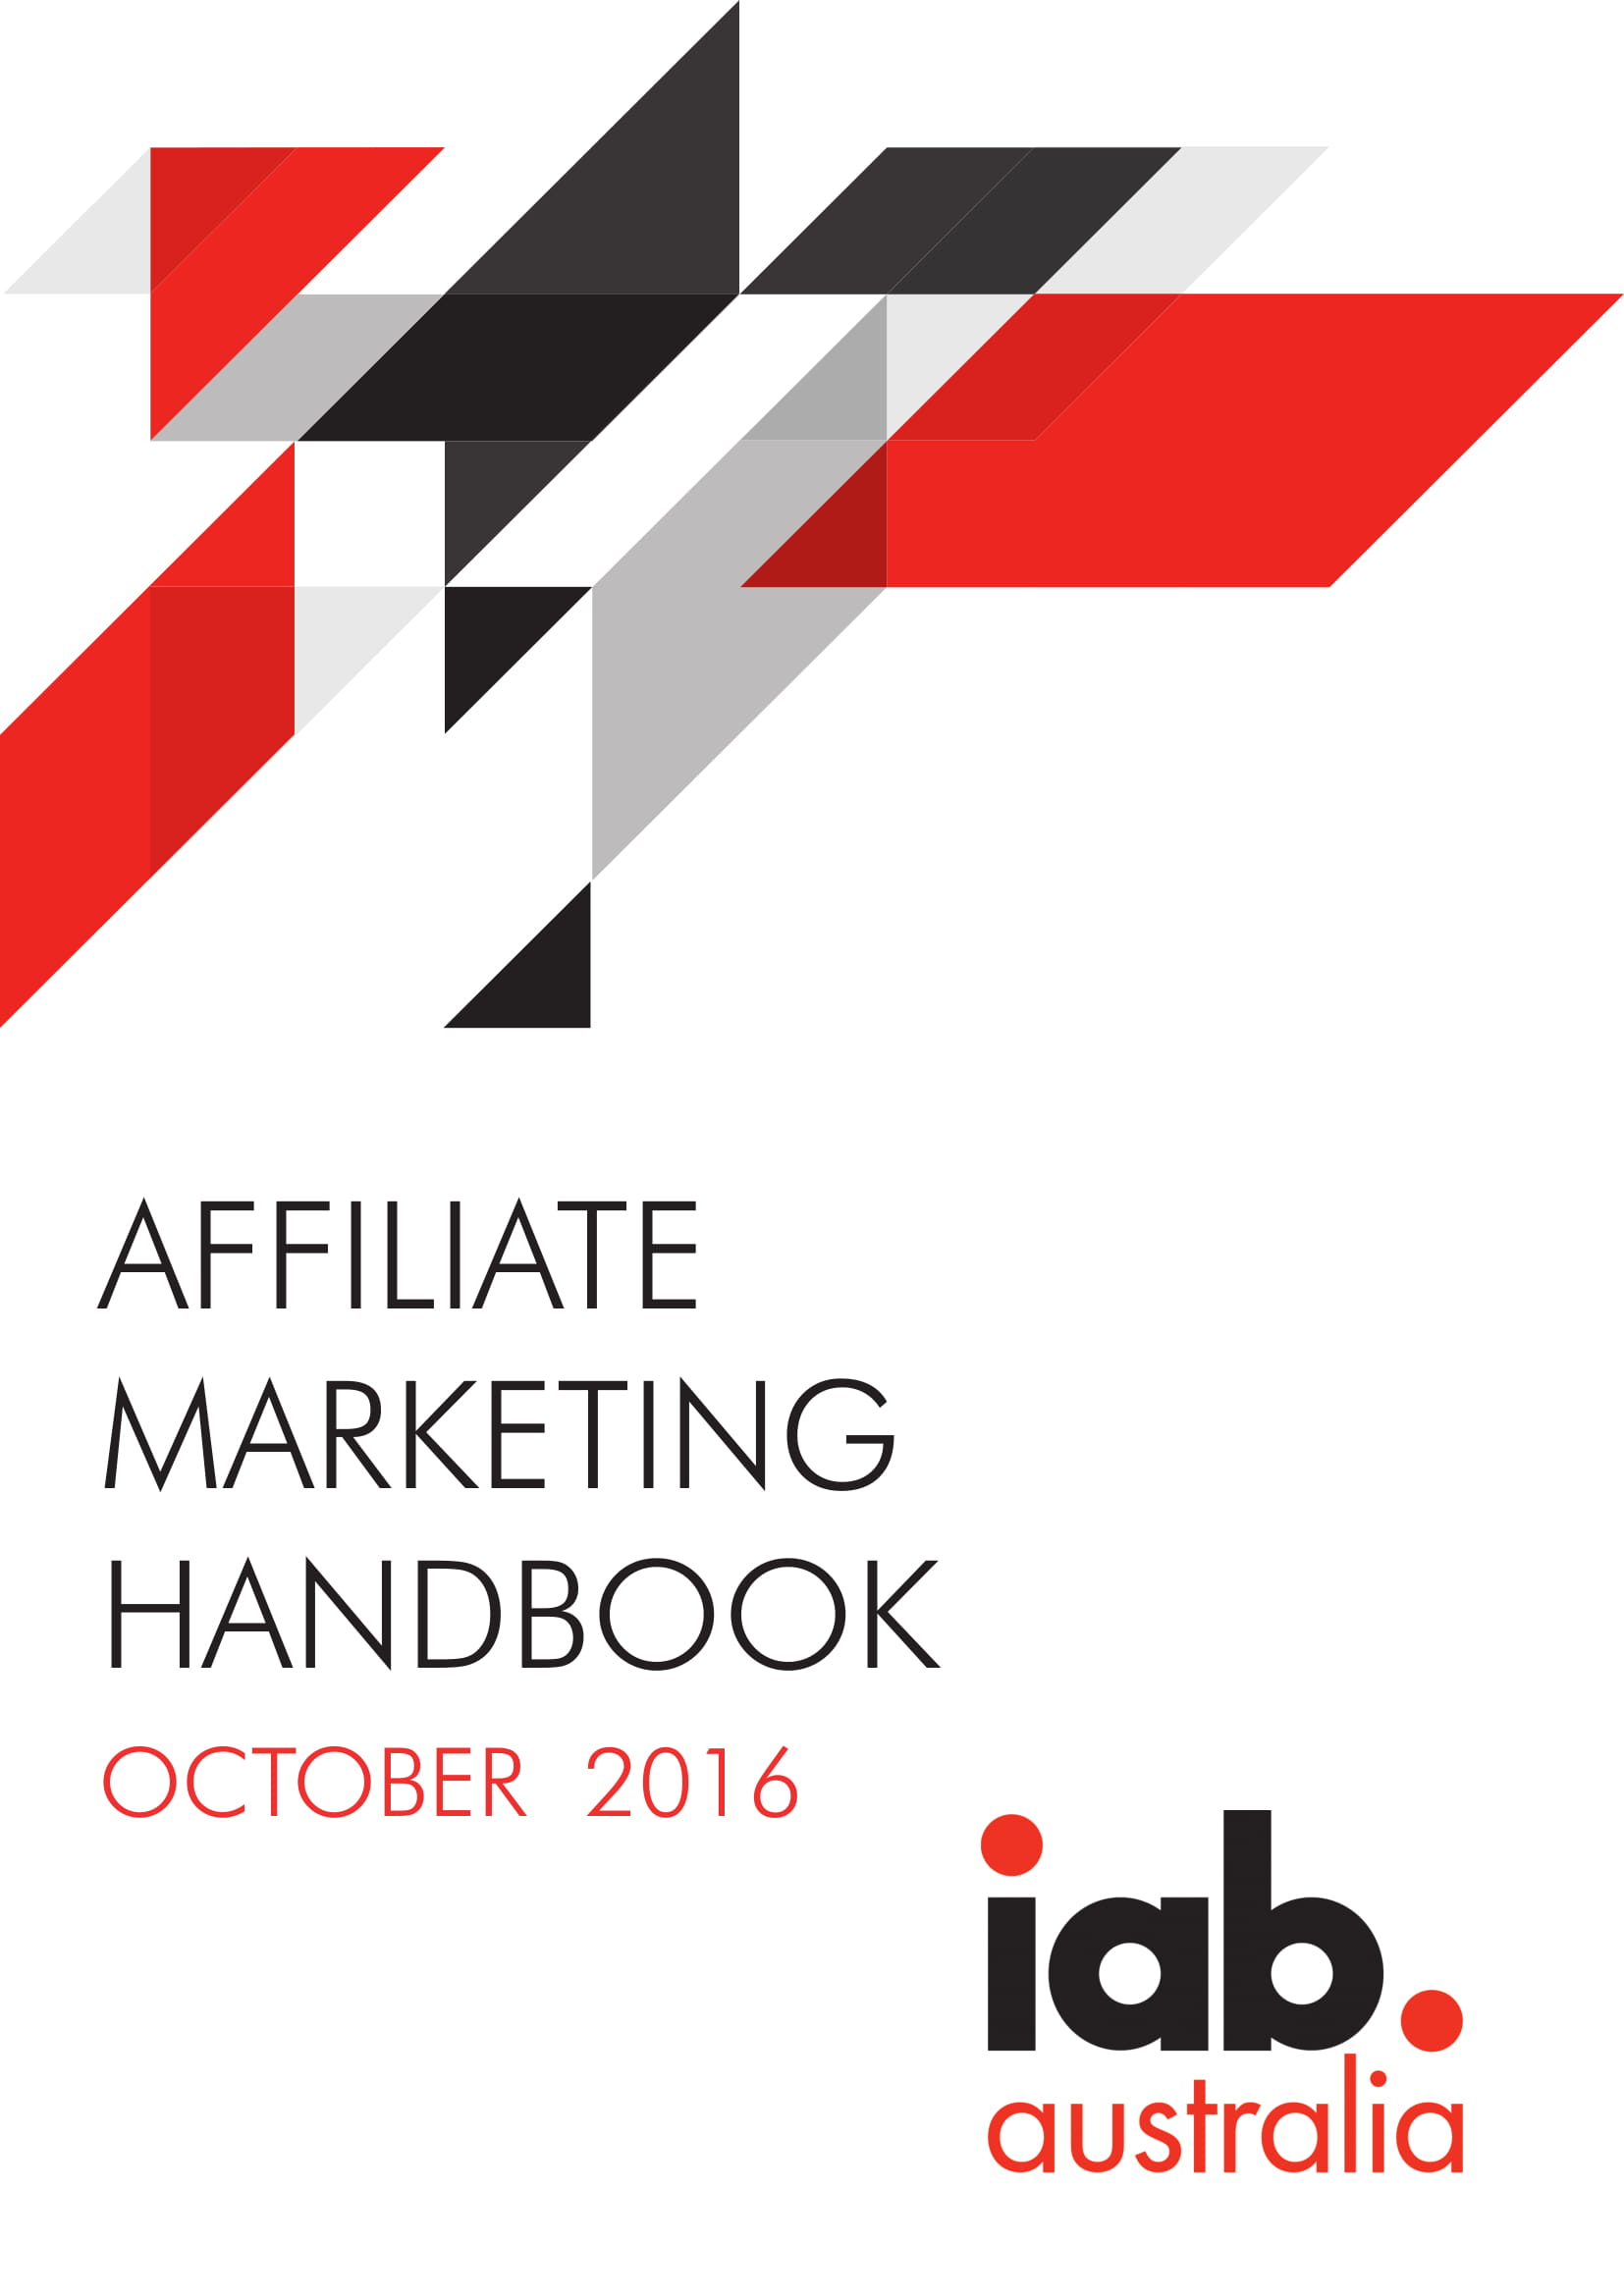 detailed affiliate marketing handbook for business plan strategies example 01